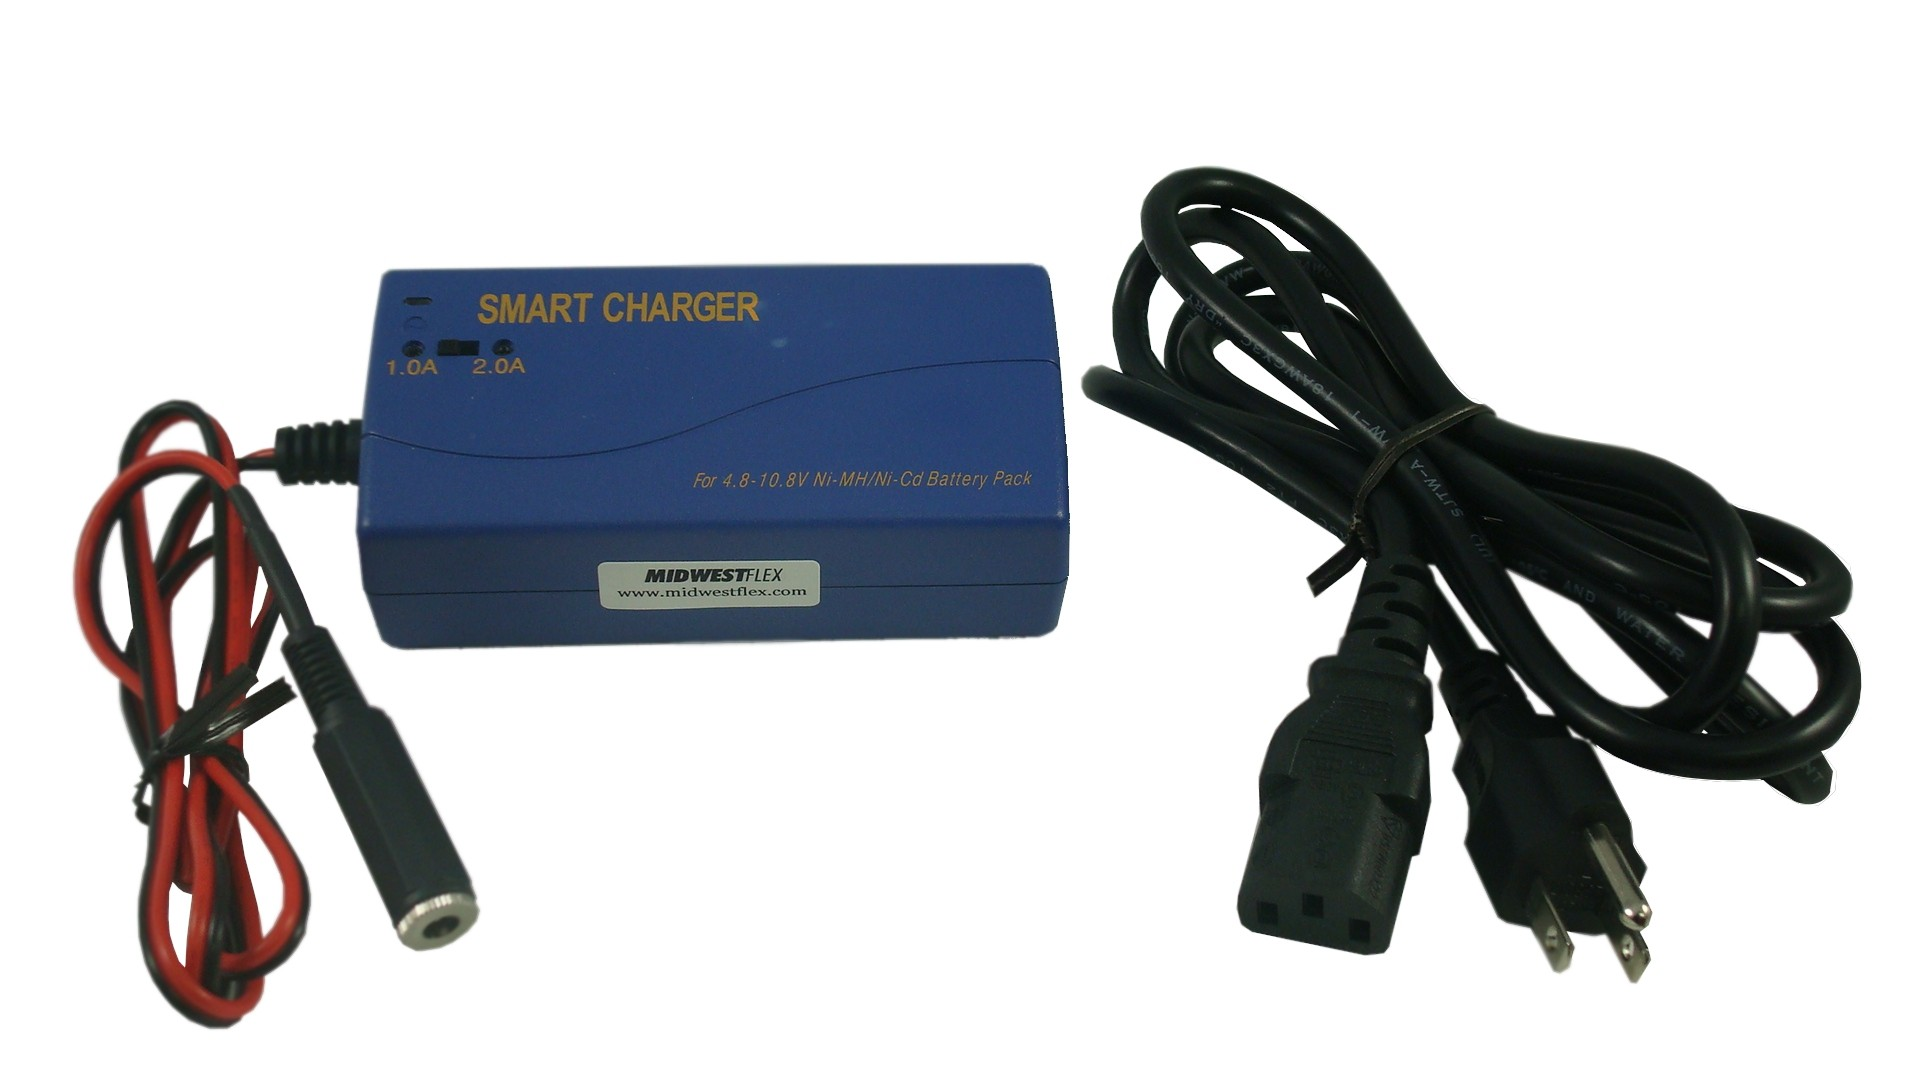 FlexBatteryPack Charger with Power Cord